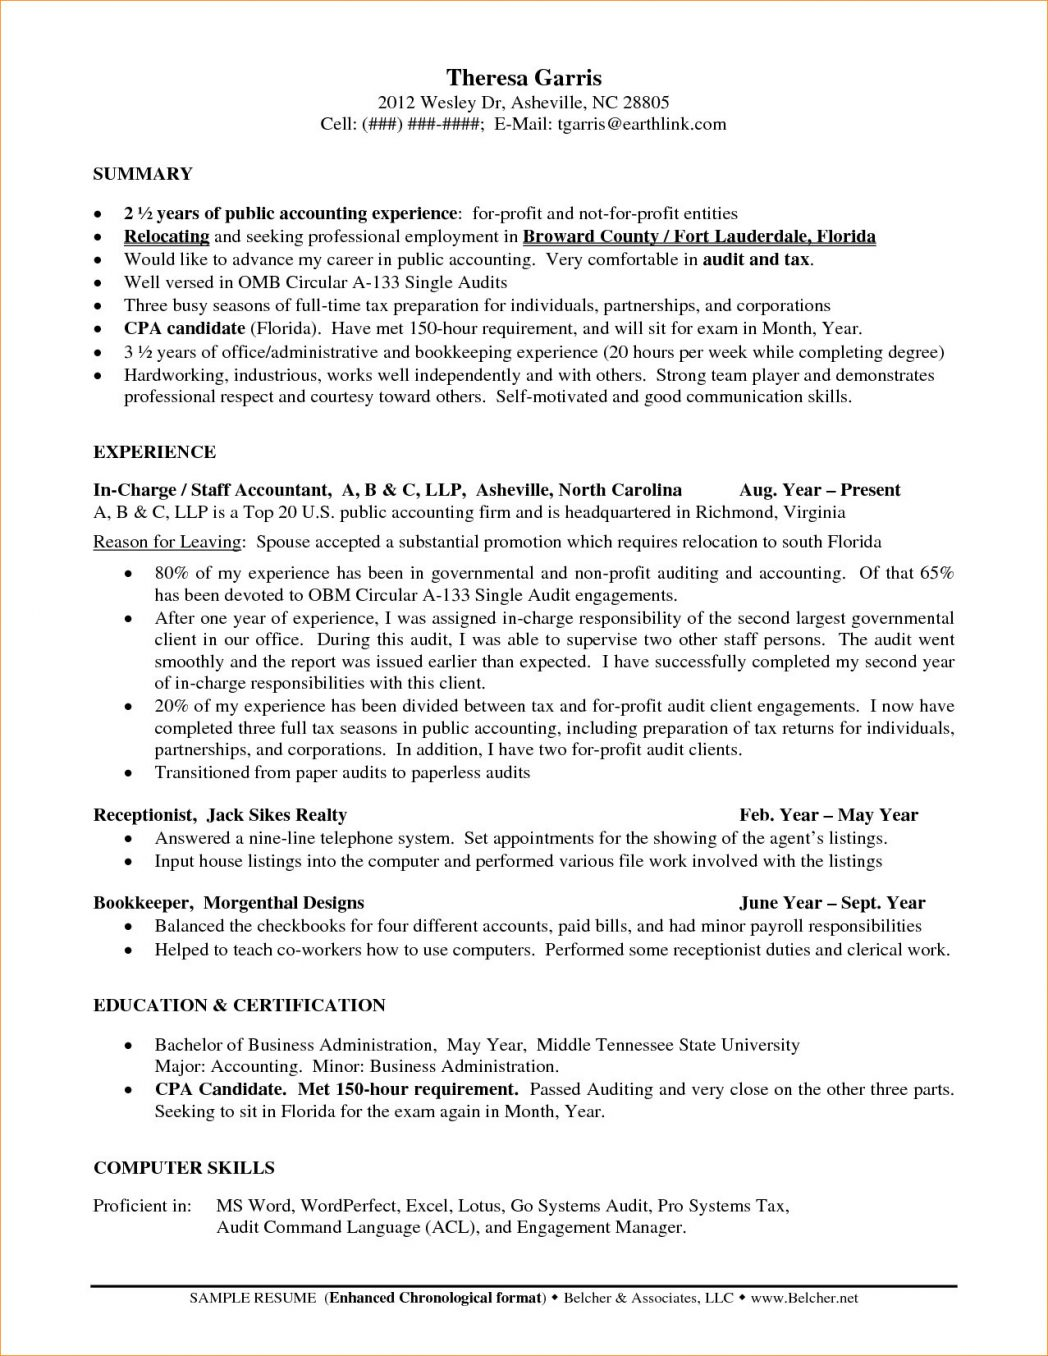 024 Essay Example Best Solutions Of Professional Mba Reflective Help Mri Tech Writing On Teaching Sample Cover Grea Leadership Introduction Using Gibbs Model In Third Person Work Experience Beautiful Examples Personal Pdf About Life Format Full